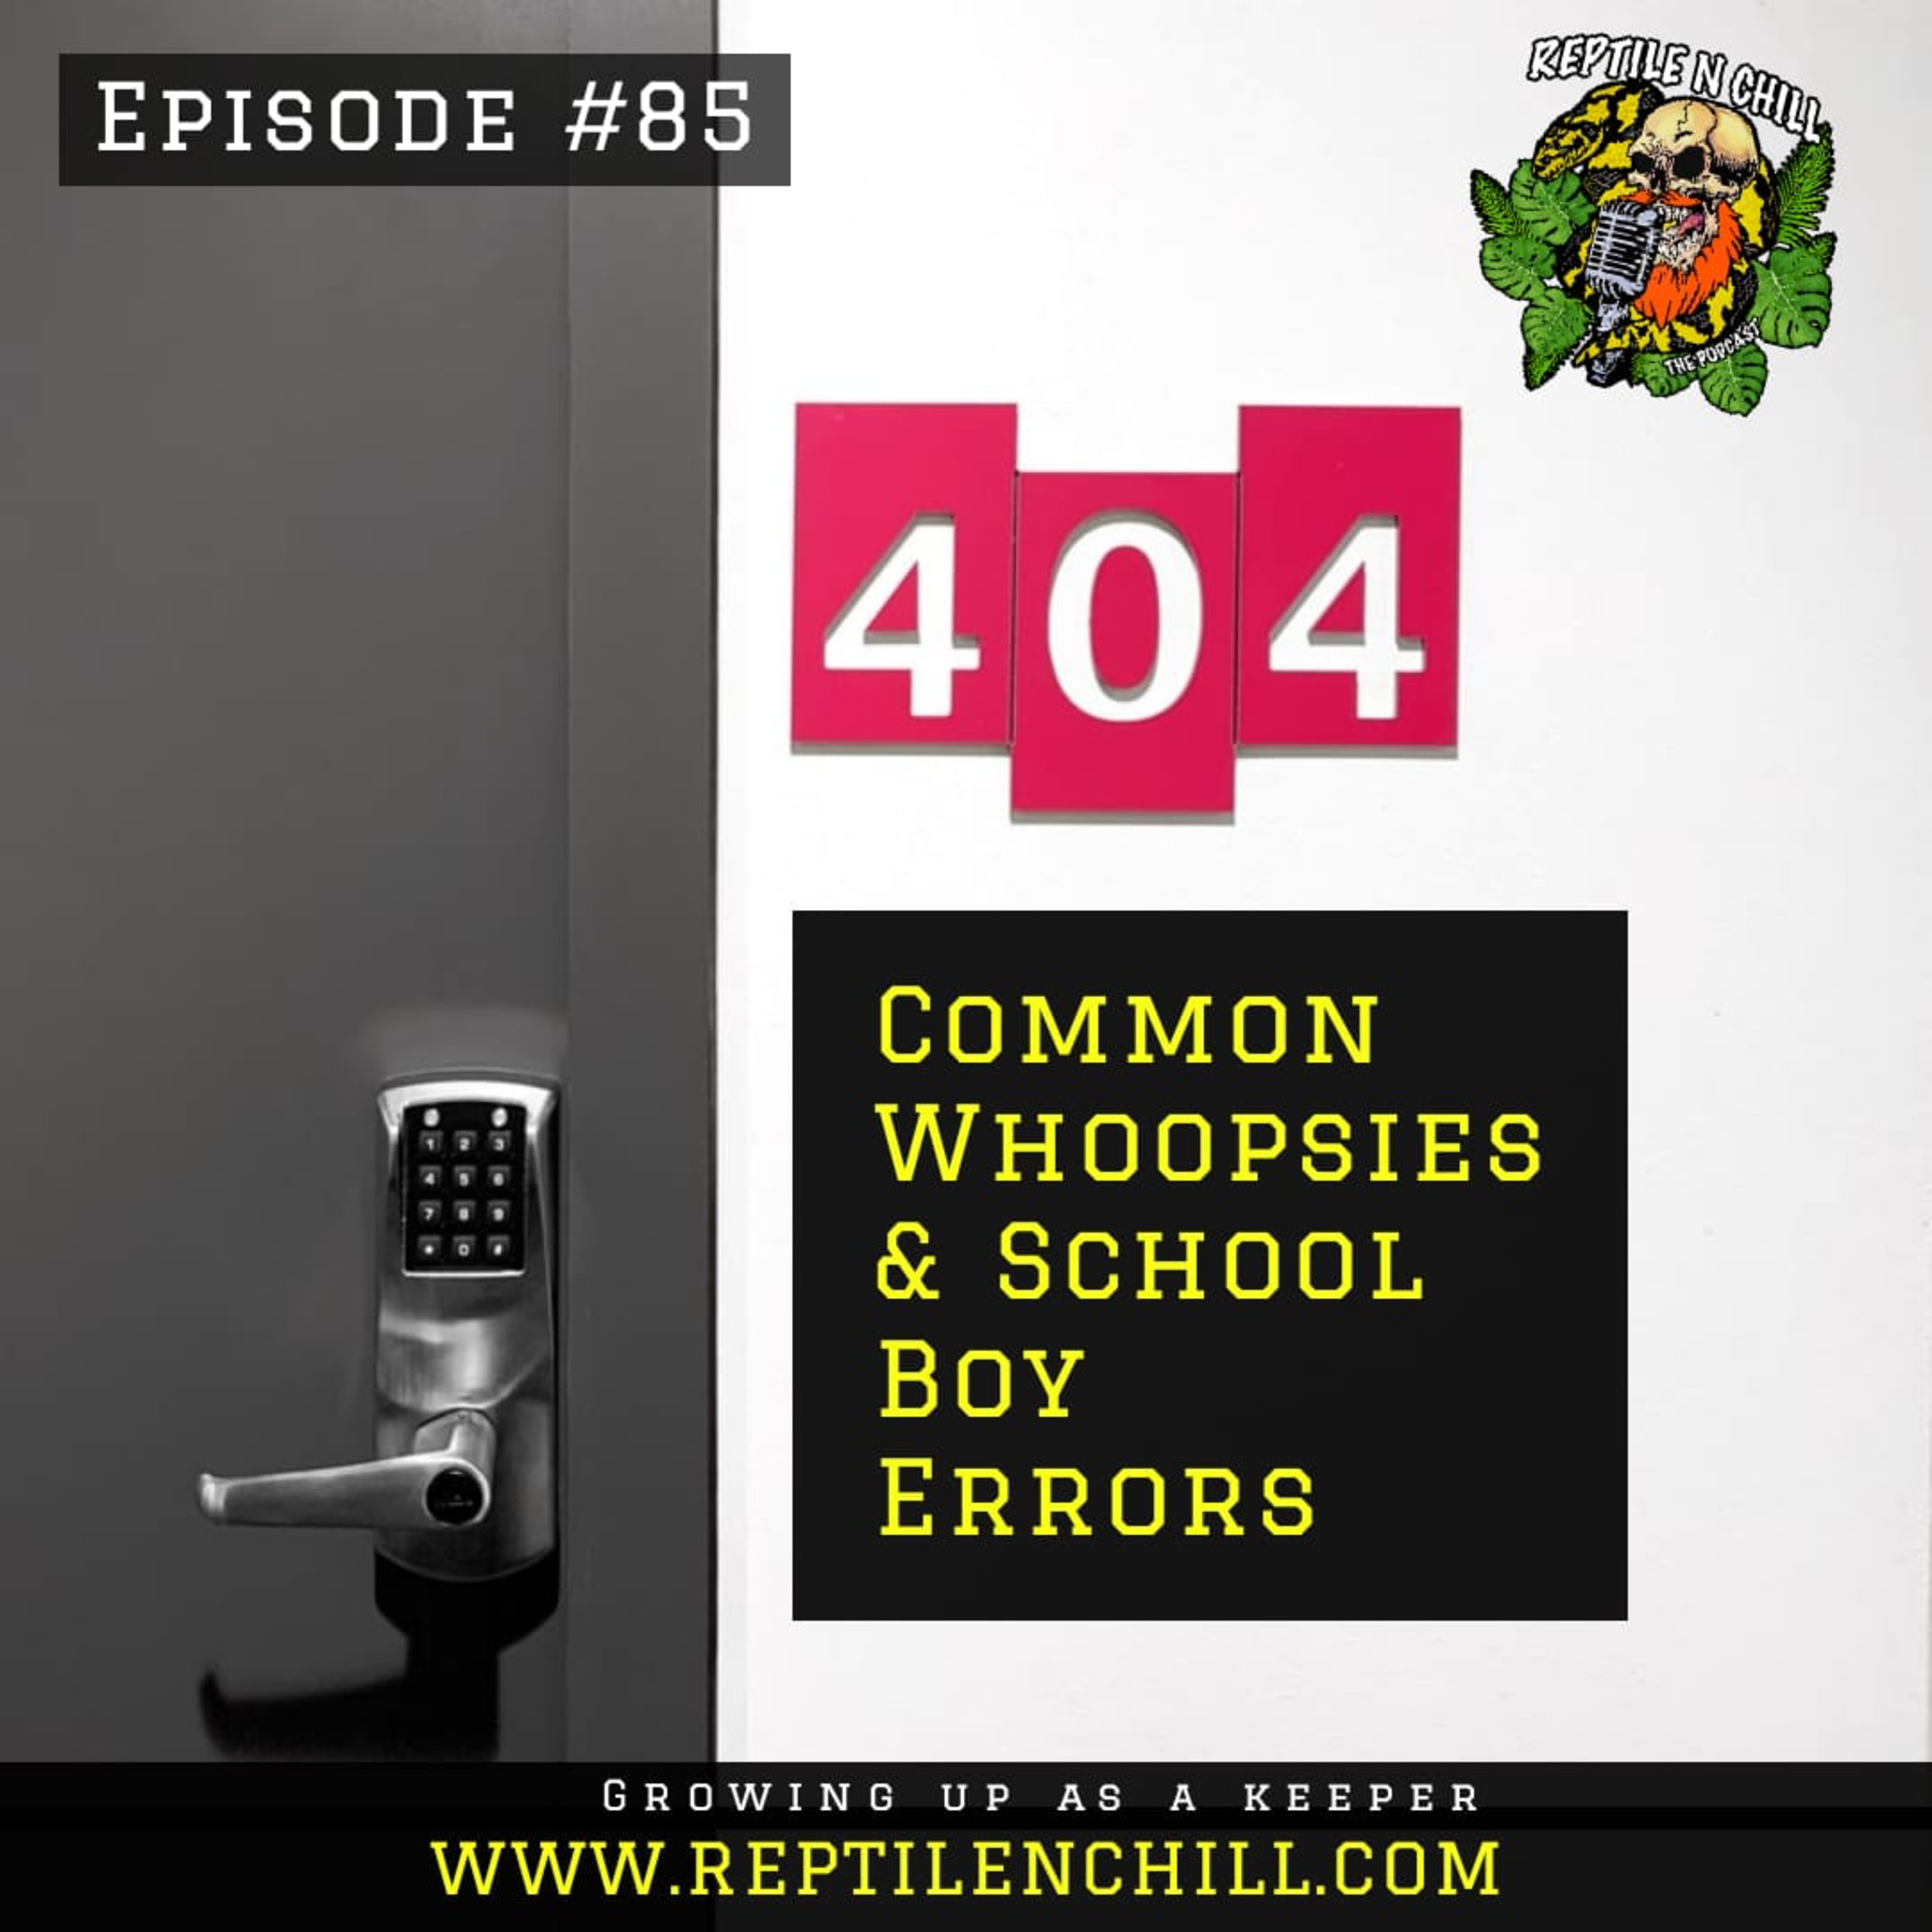 Common Whoopsies & School Boy Errors - 85 Reptile n Chill